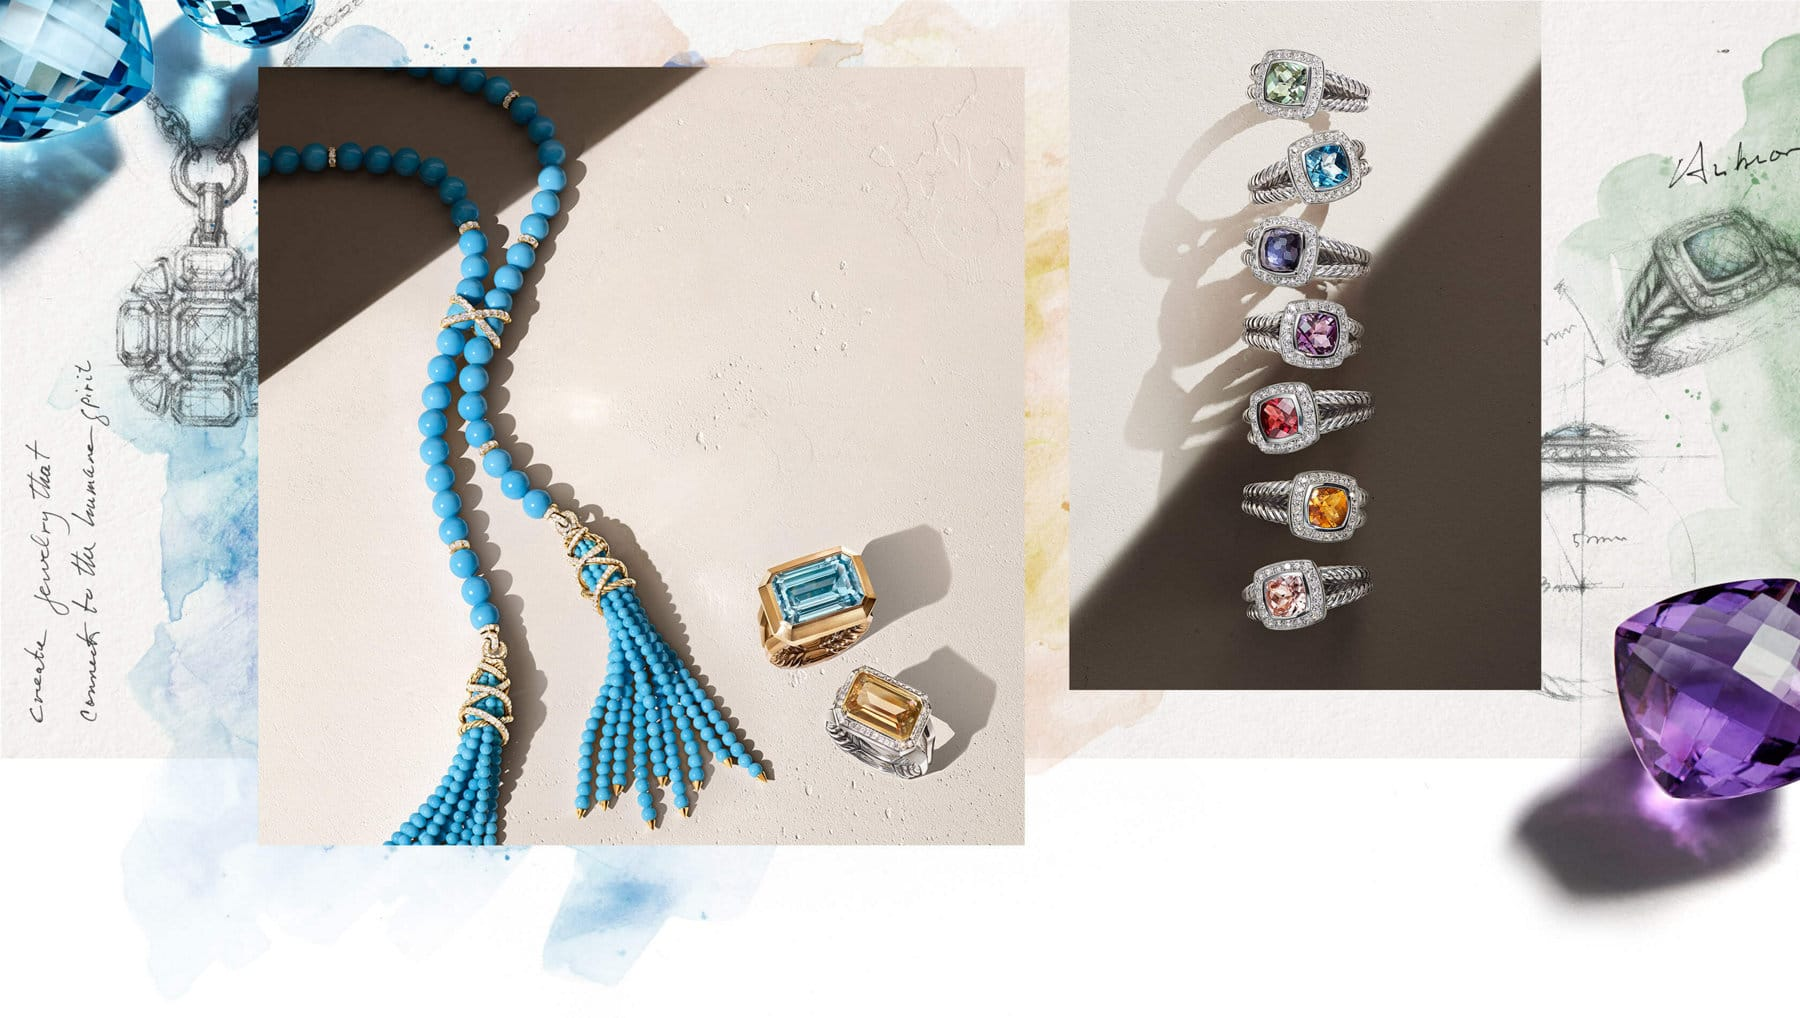 Two color photos of David Yurman jewelry are juxtaposed with a watercolor-and-pencil sketches of a Novella mosaic pendant and Petite Albion ring. The jewelry shown includes a Helena turquoise tassel necklace with threads of 18K yellow gold and pavé diamonds, Novella rings in 18K yellow gold or sterling silver with colored gemstones and pavé diamonds, and a vertical stack of Petite Albion rings in sterling silver with a chromatic array of colored gemstones and pavé diamonds.